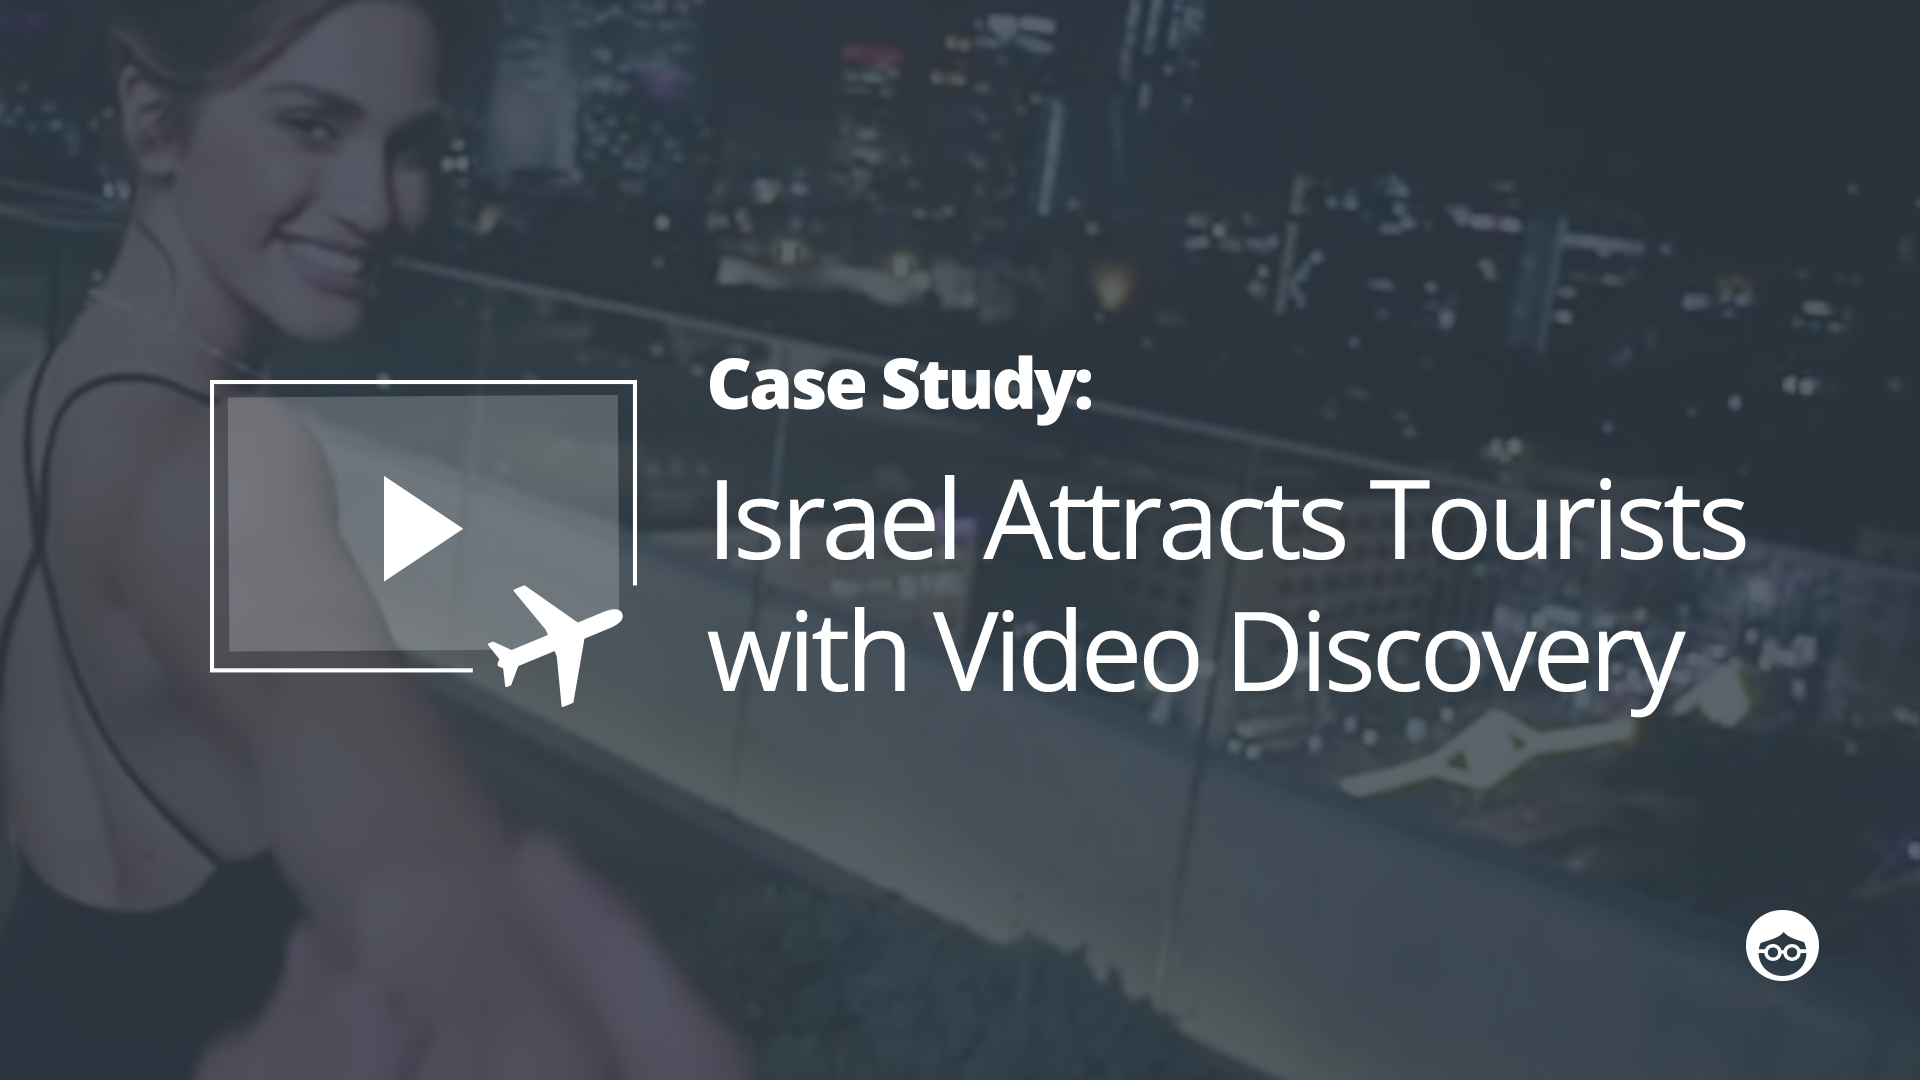 Israel Attracts Tourists